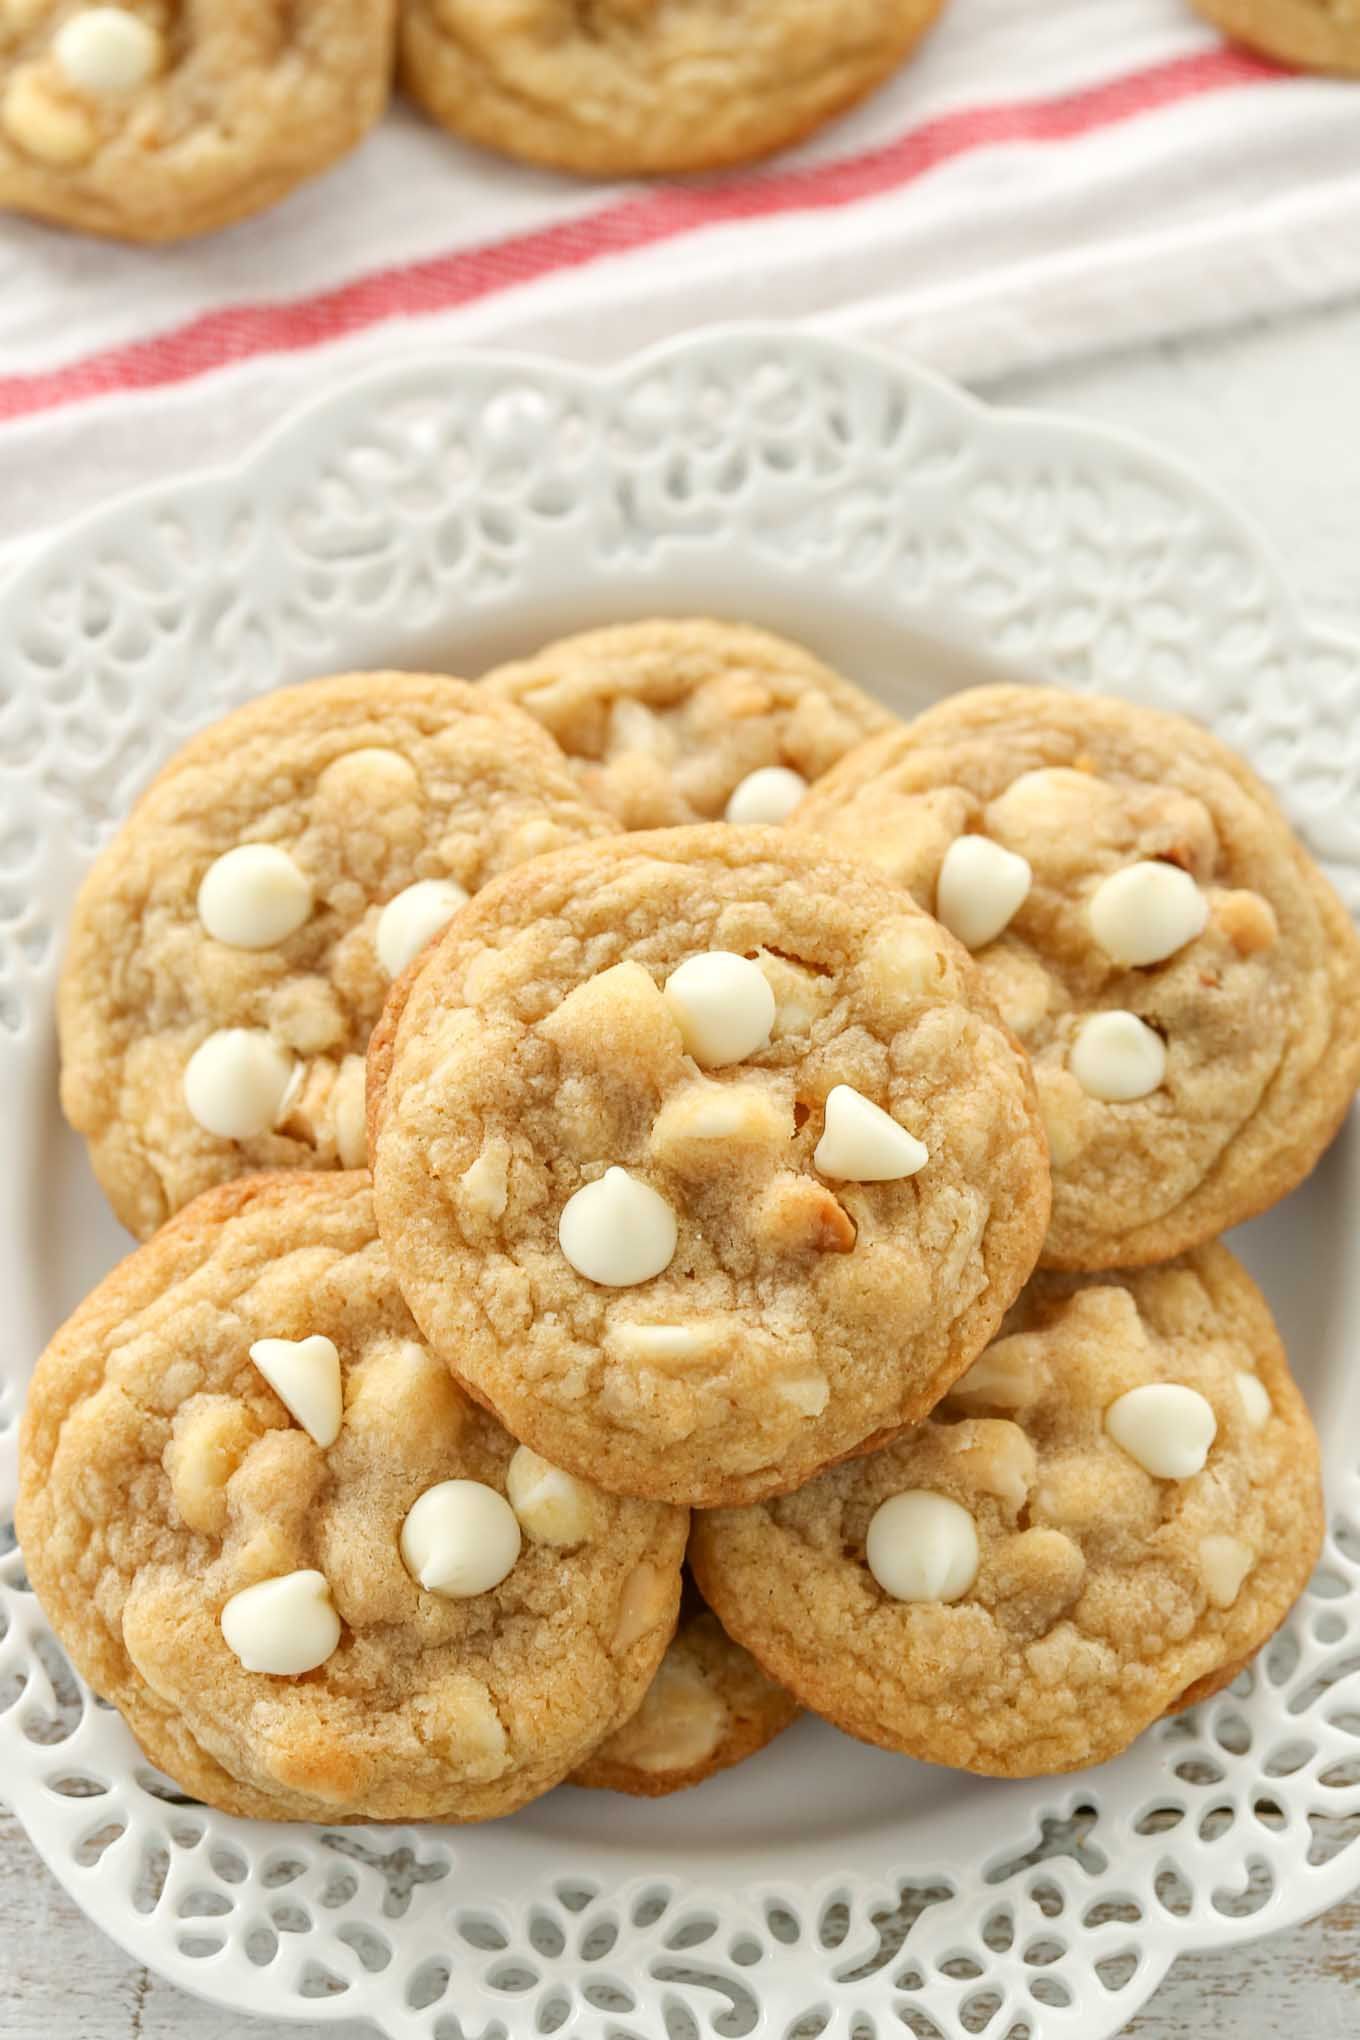 These White Chocolate Macadamia Nut Cookies Have Slightly Crisp Edges With Soft And Chewy Centers